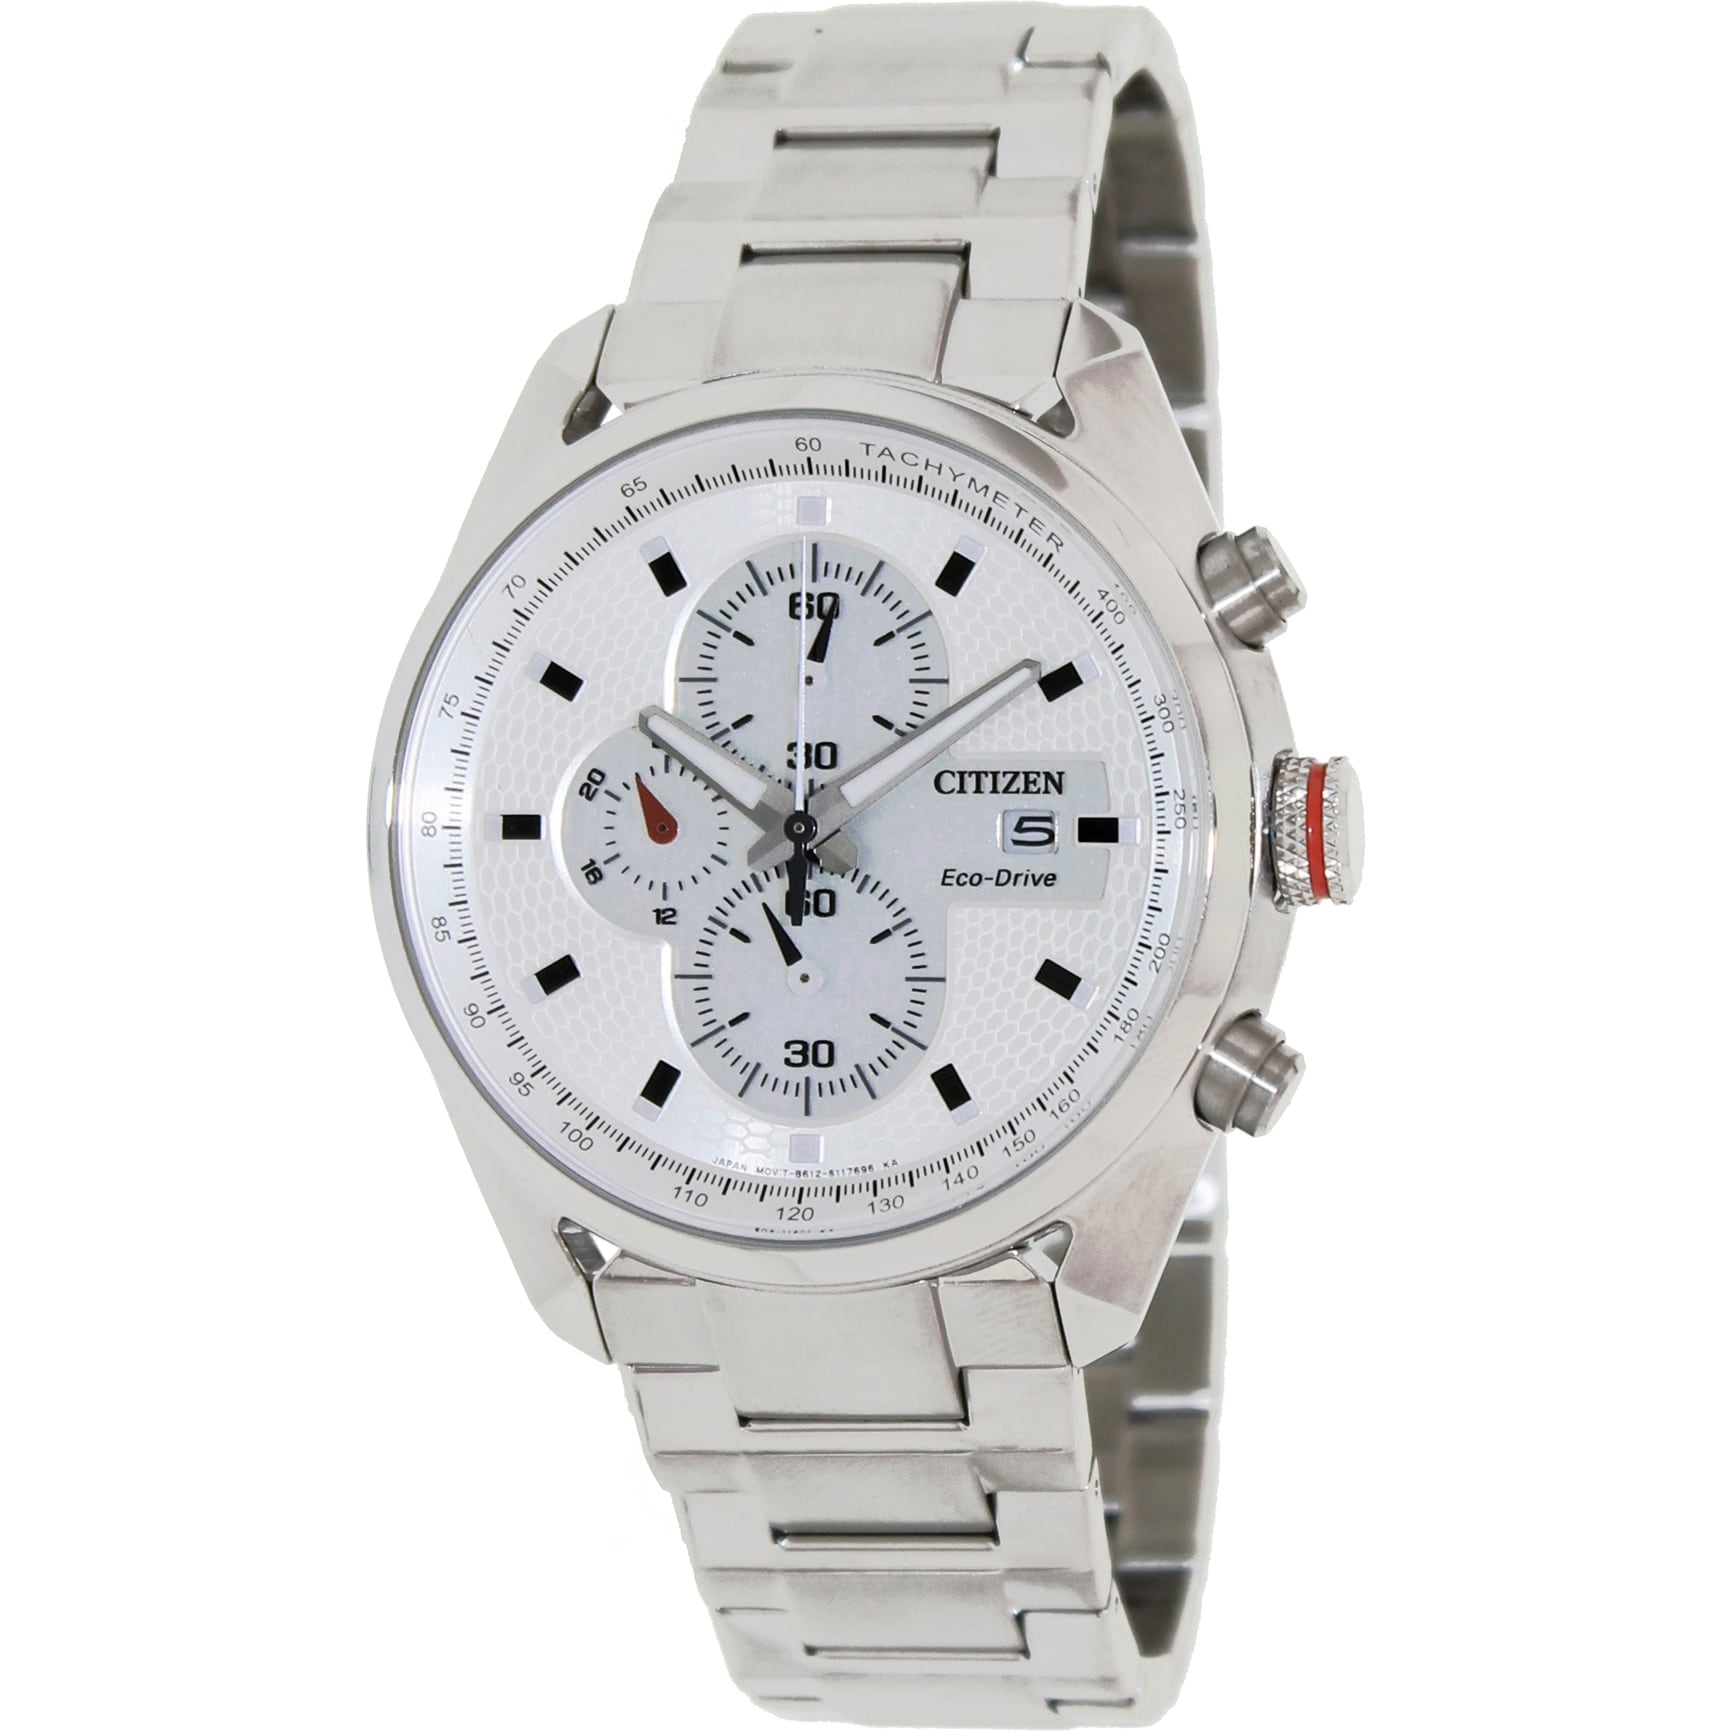 be8ac5cee Shop Citizen Men's 'Eco-Drive ' Silvertone Stainless Steel White Dial Watch  - Free Shipping Today - Overstock - 8134331